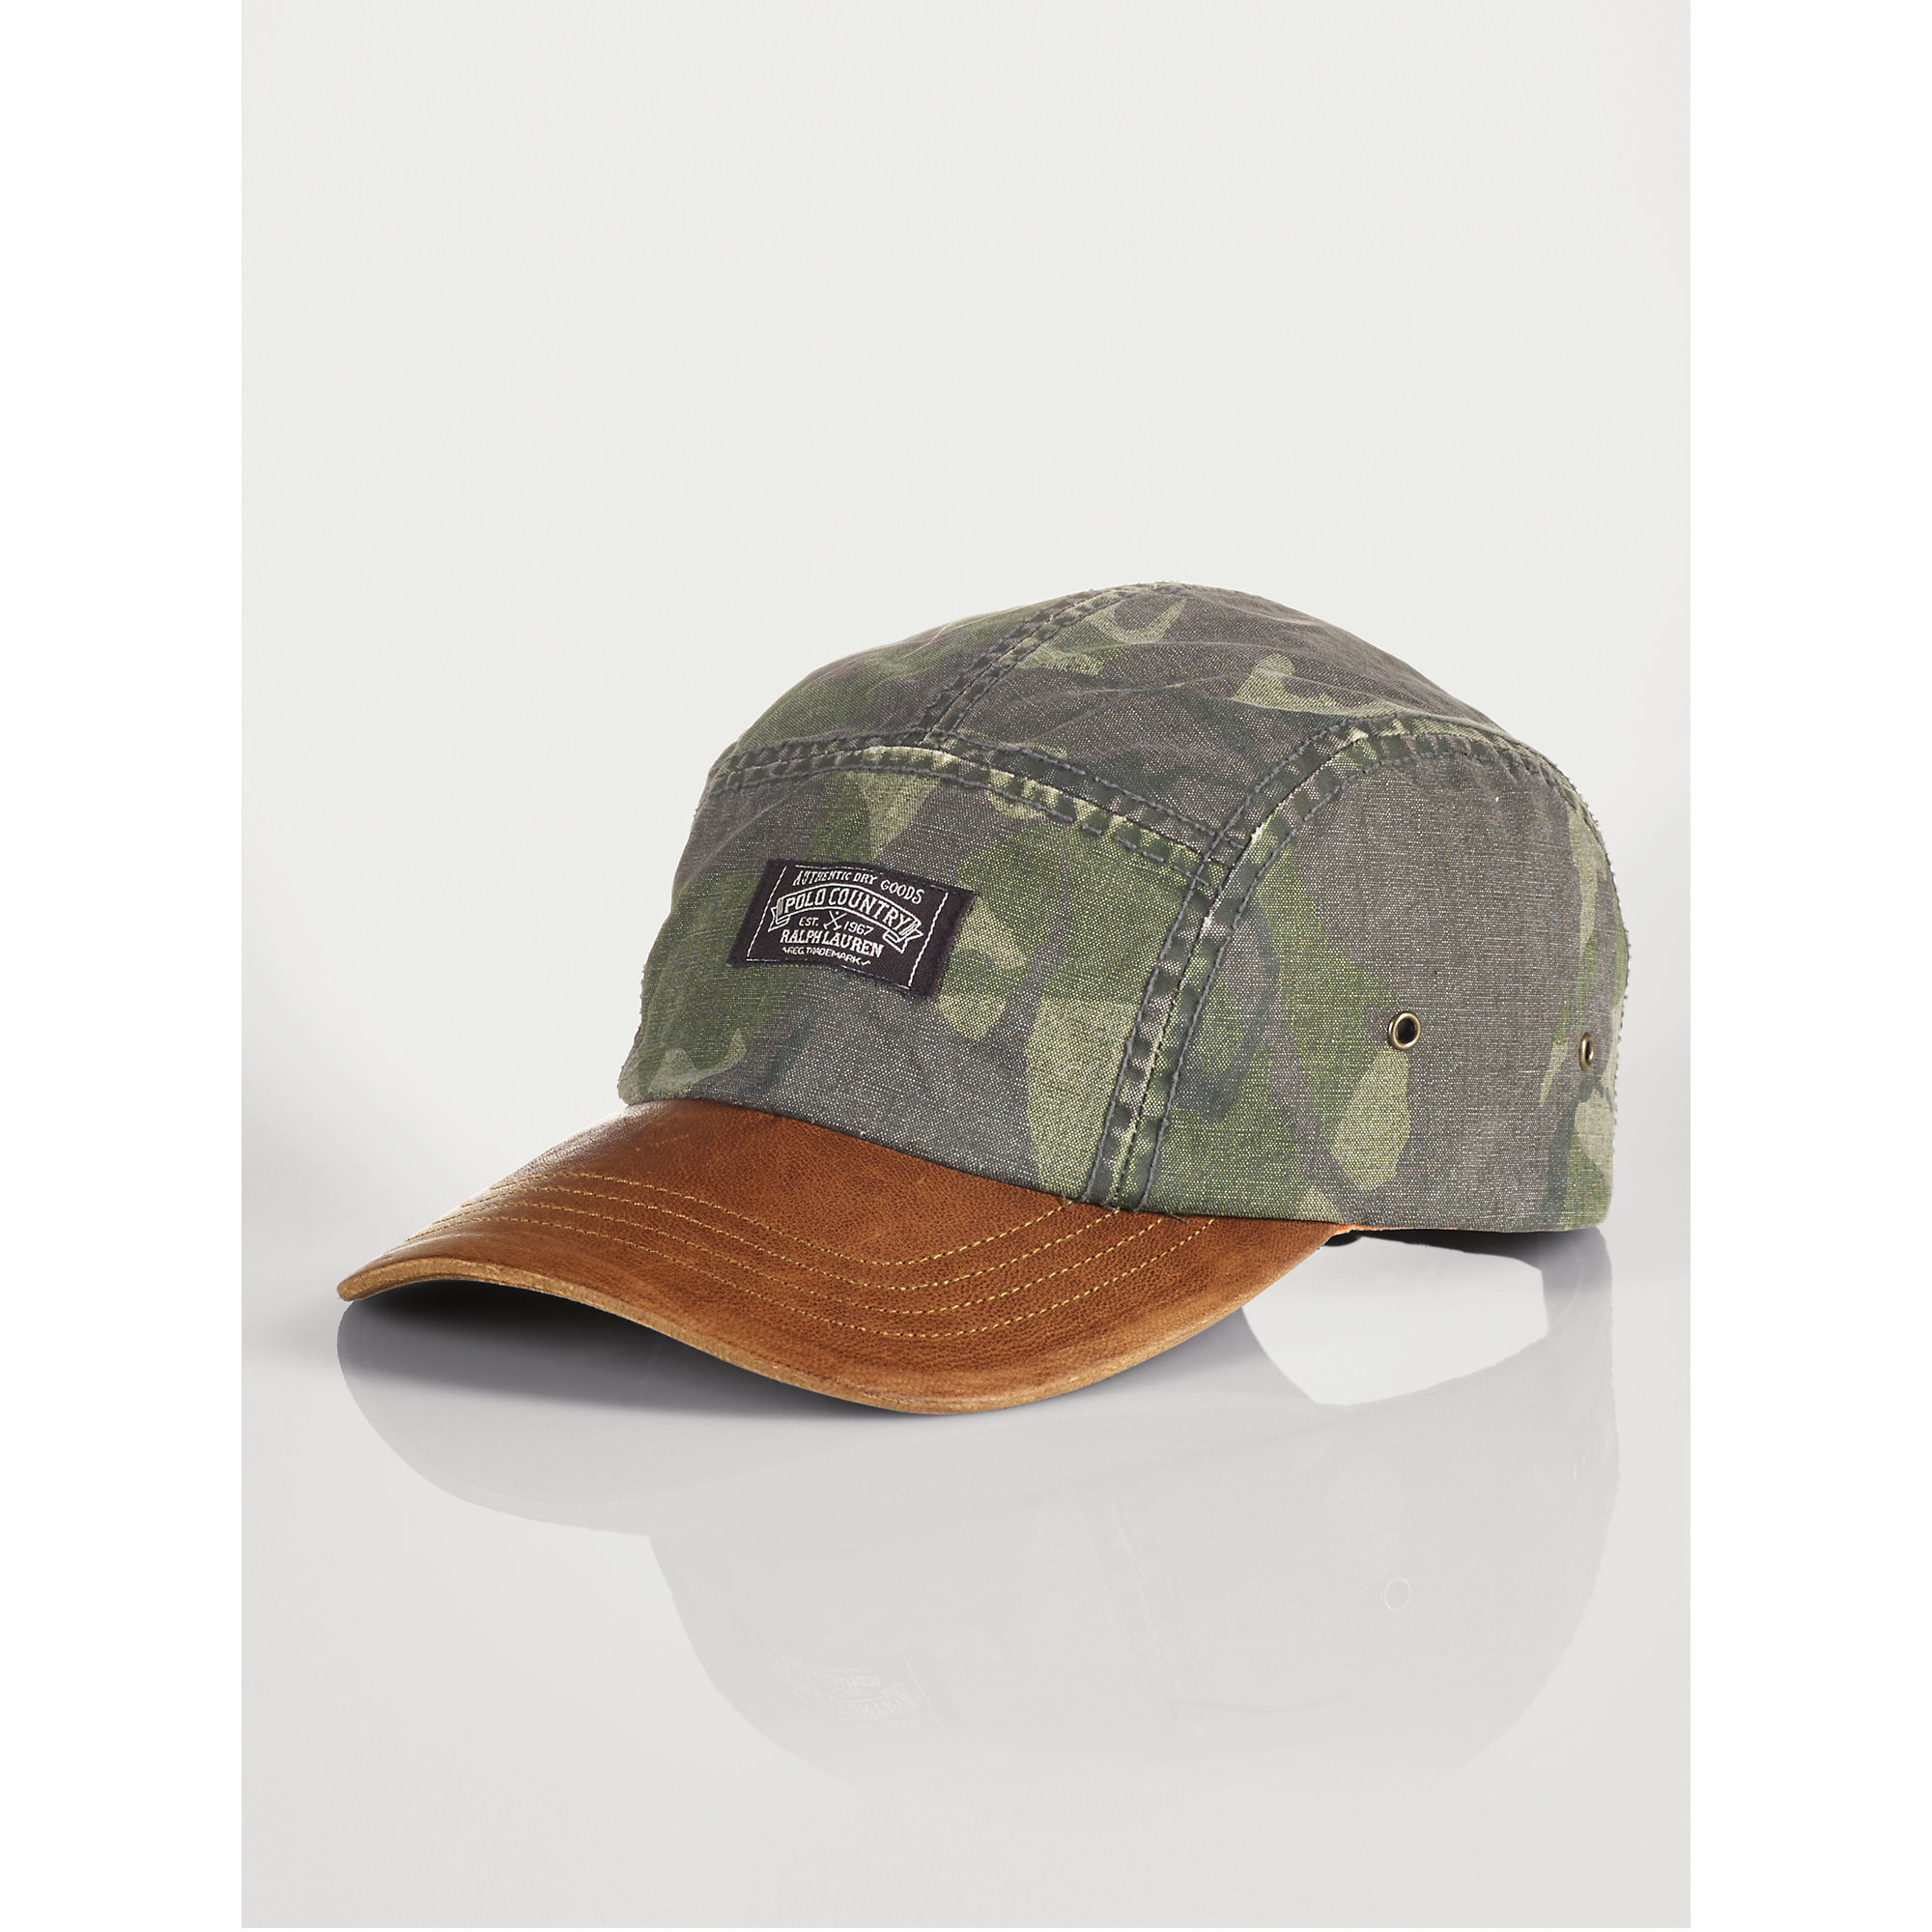 Lyst - Polo Ralph Lauren Oilcloth And Leather Cap in Green for Men db5229f22c0e